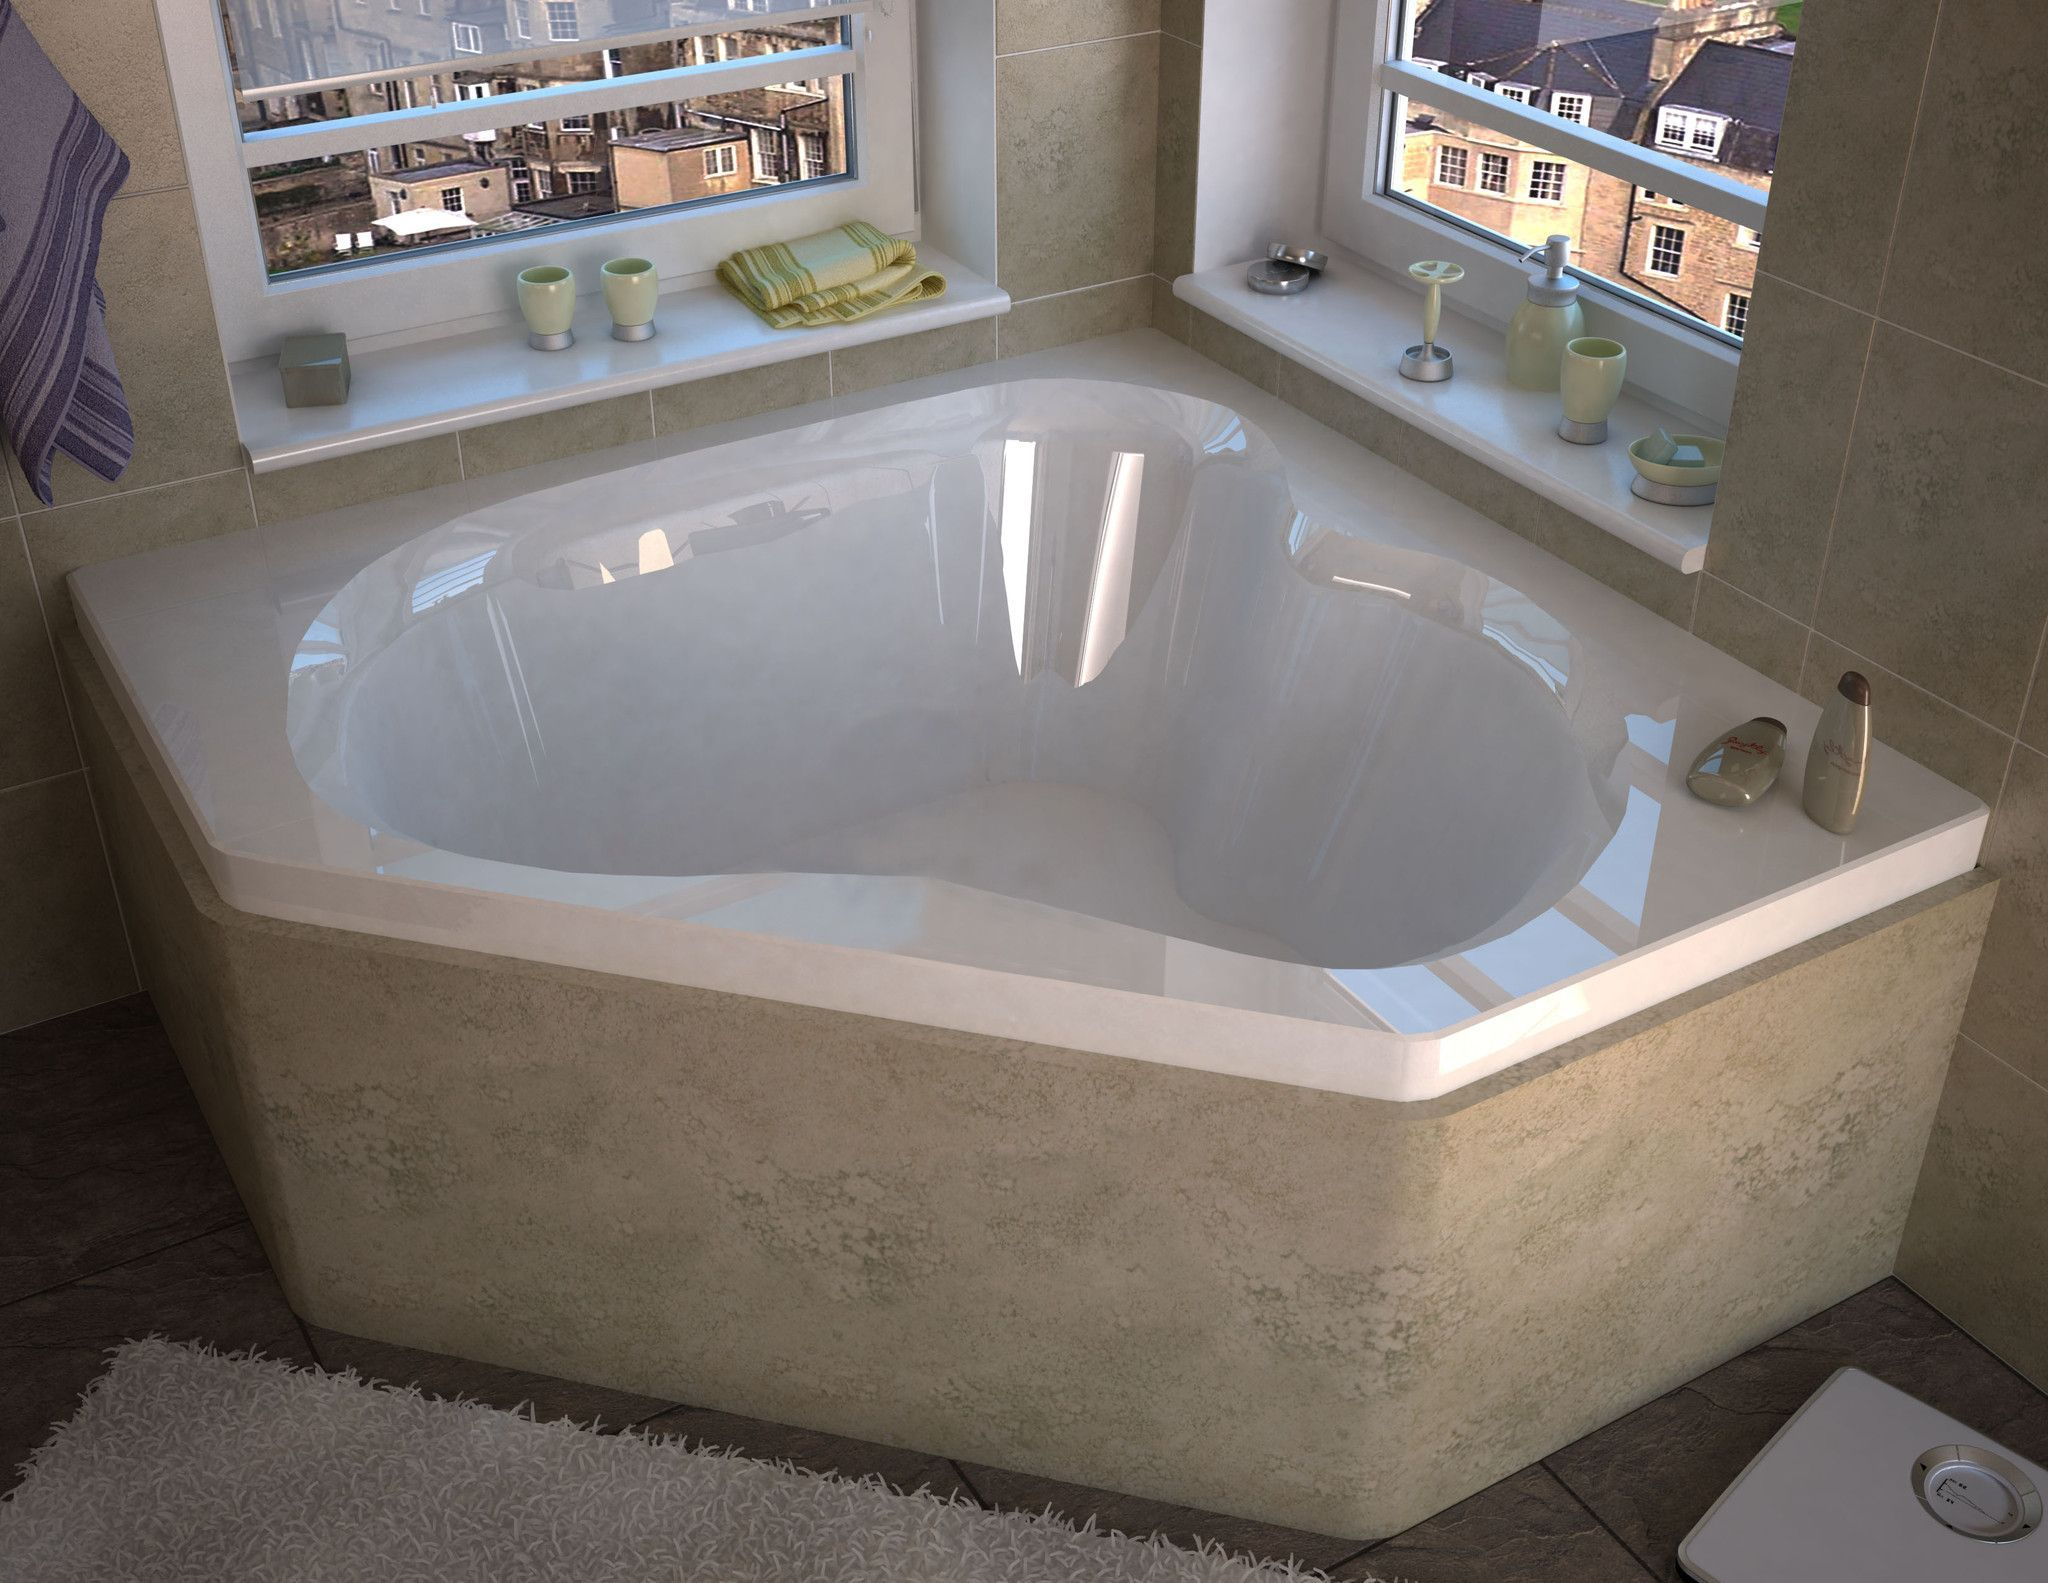 Bathroom Jacuzzi Tub venzi vz6060c tovila 60 x 60 corner soaking bathtub with center